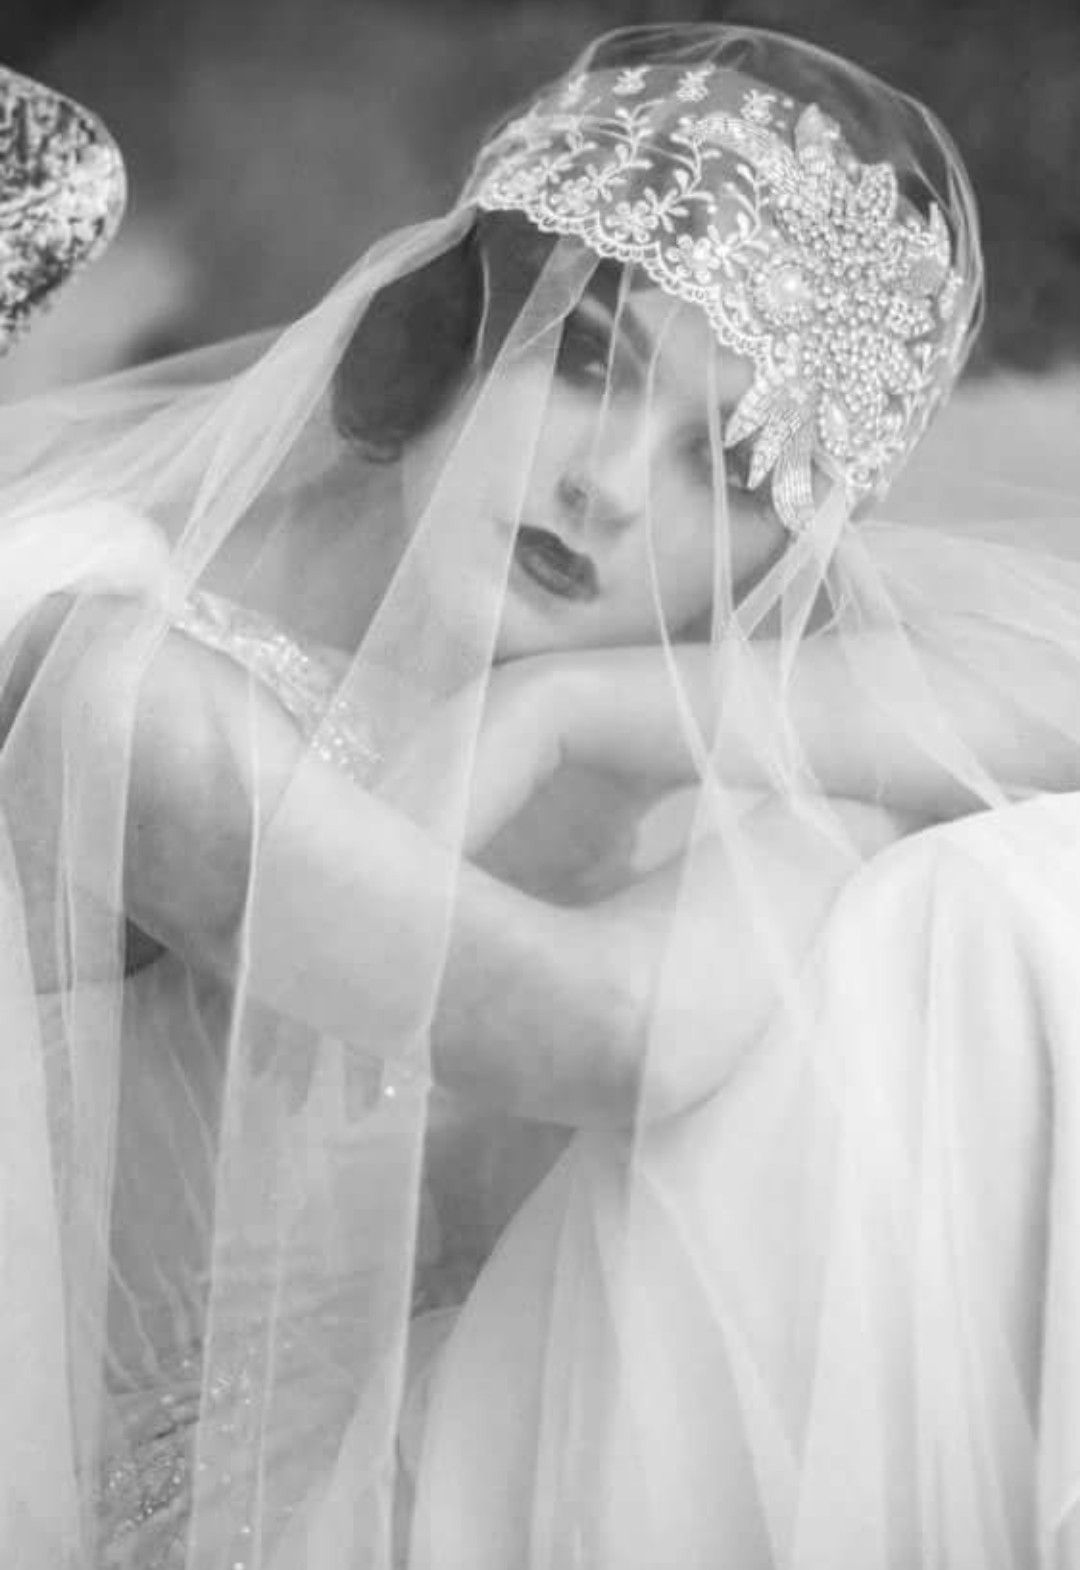 Pin by Mia.. on 1920's in 2020 | Edwardian wedding, Wedding gowns vintage, Wedding dresses vintage